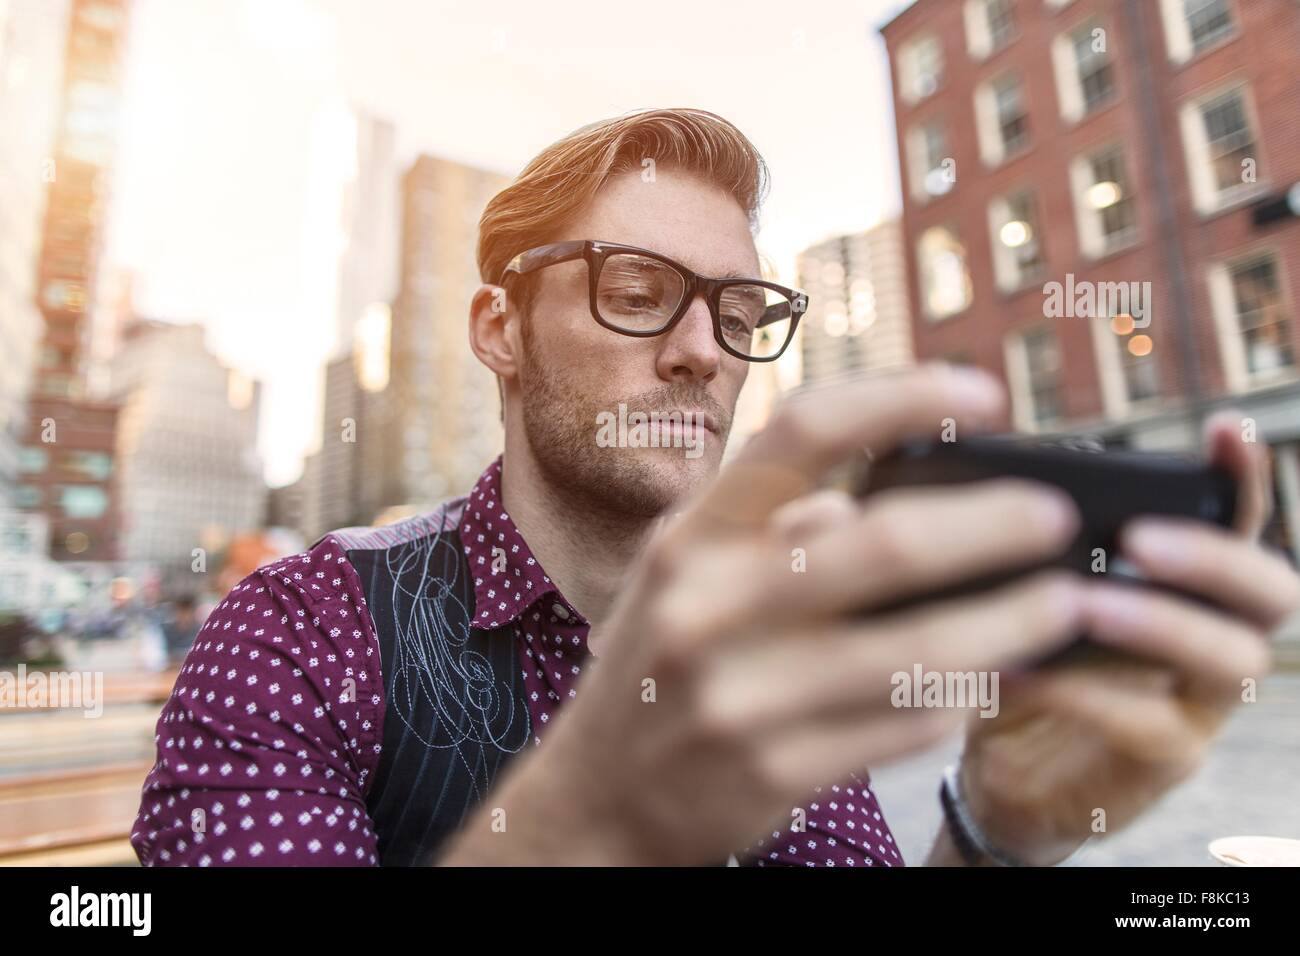 Serious young businessman reading smartphone text at sidewalk cafe, New York, USA - Stock Image